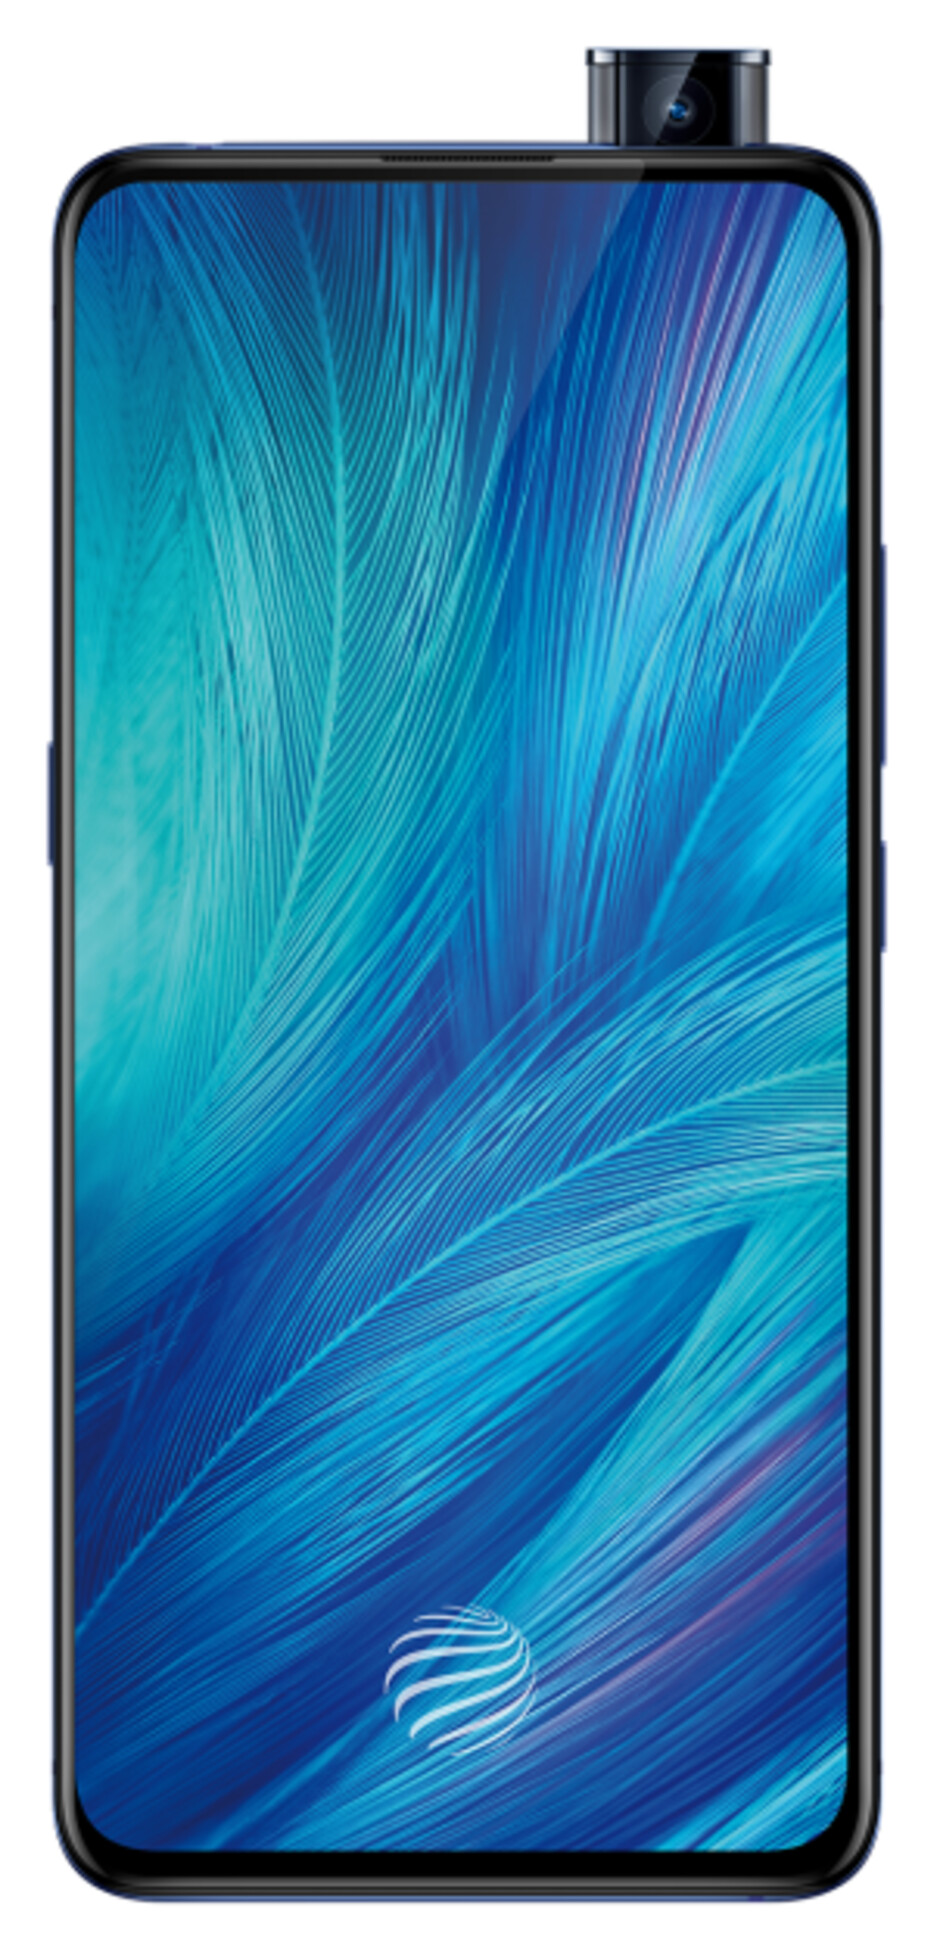 Vivo X27 trades the notch for a pop-out camera to offer a bezel-less experience